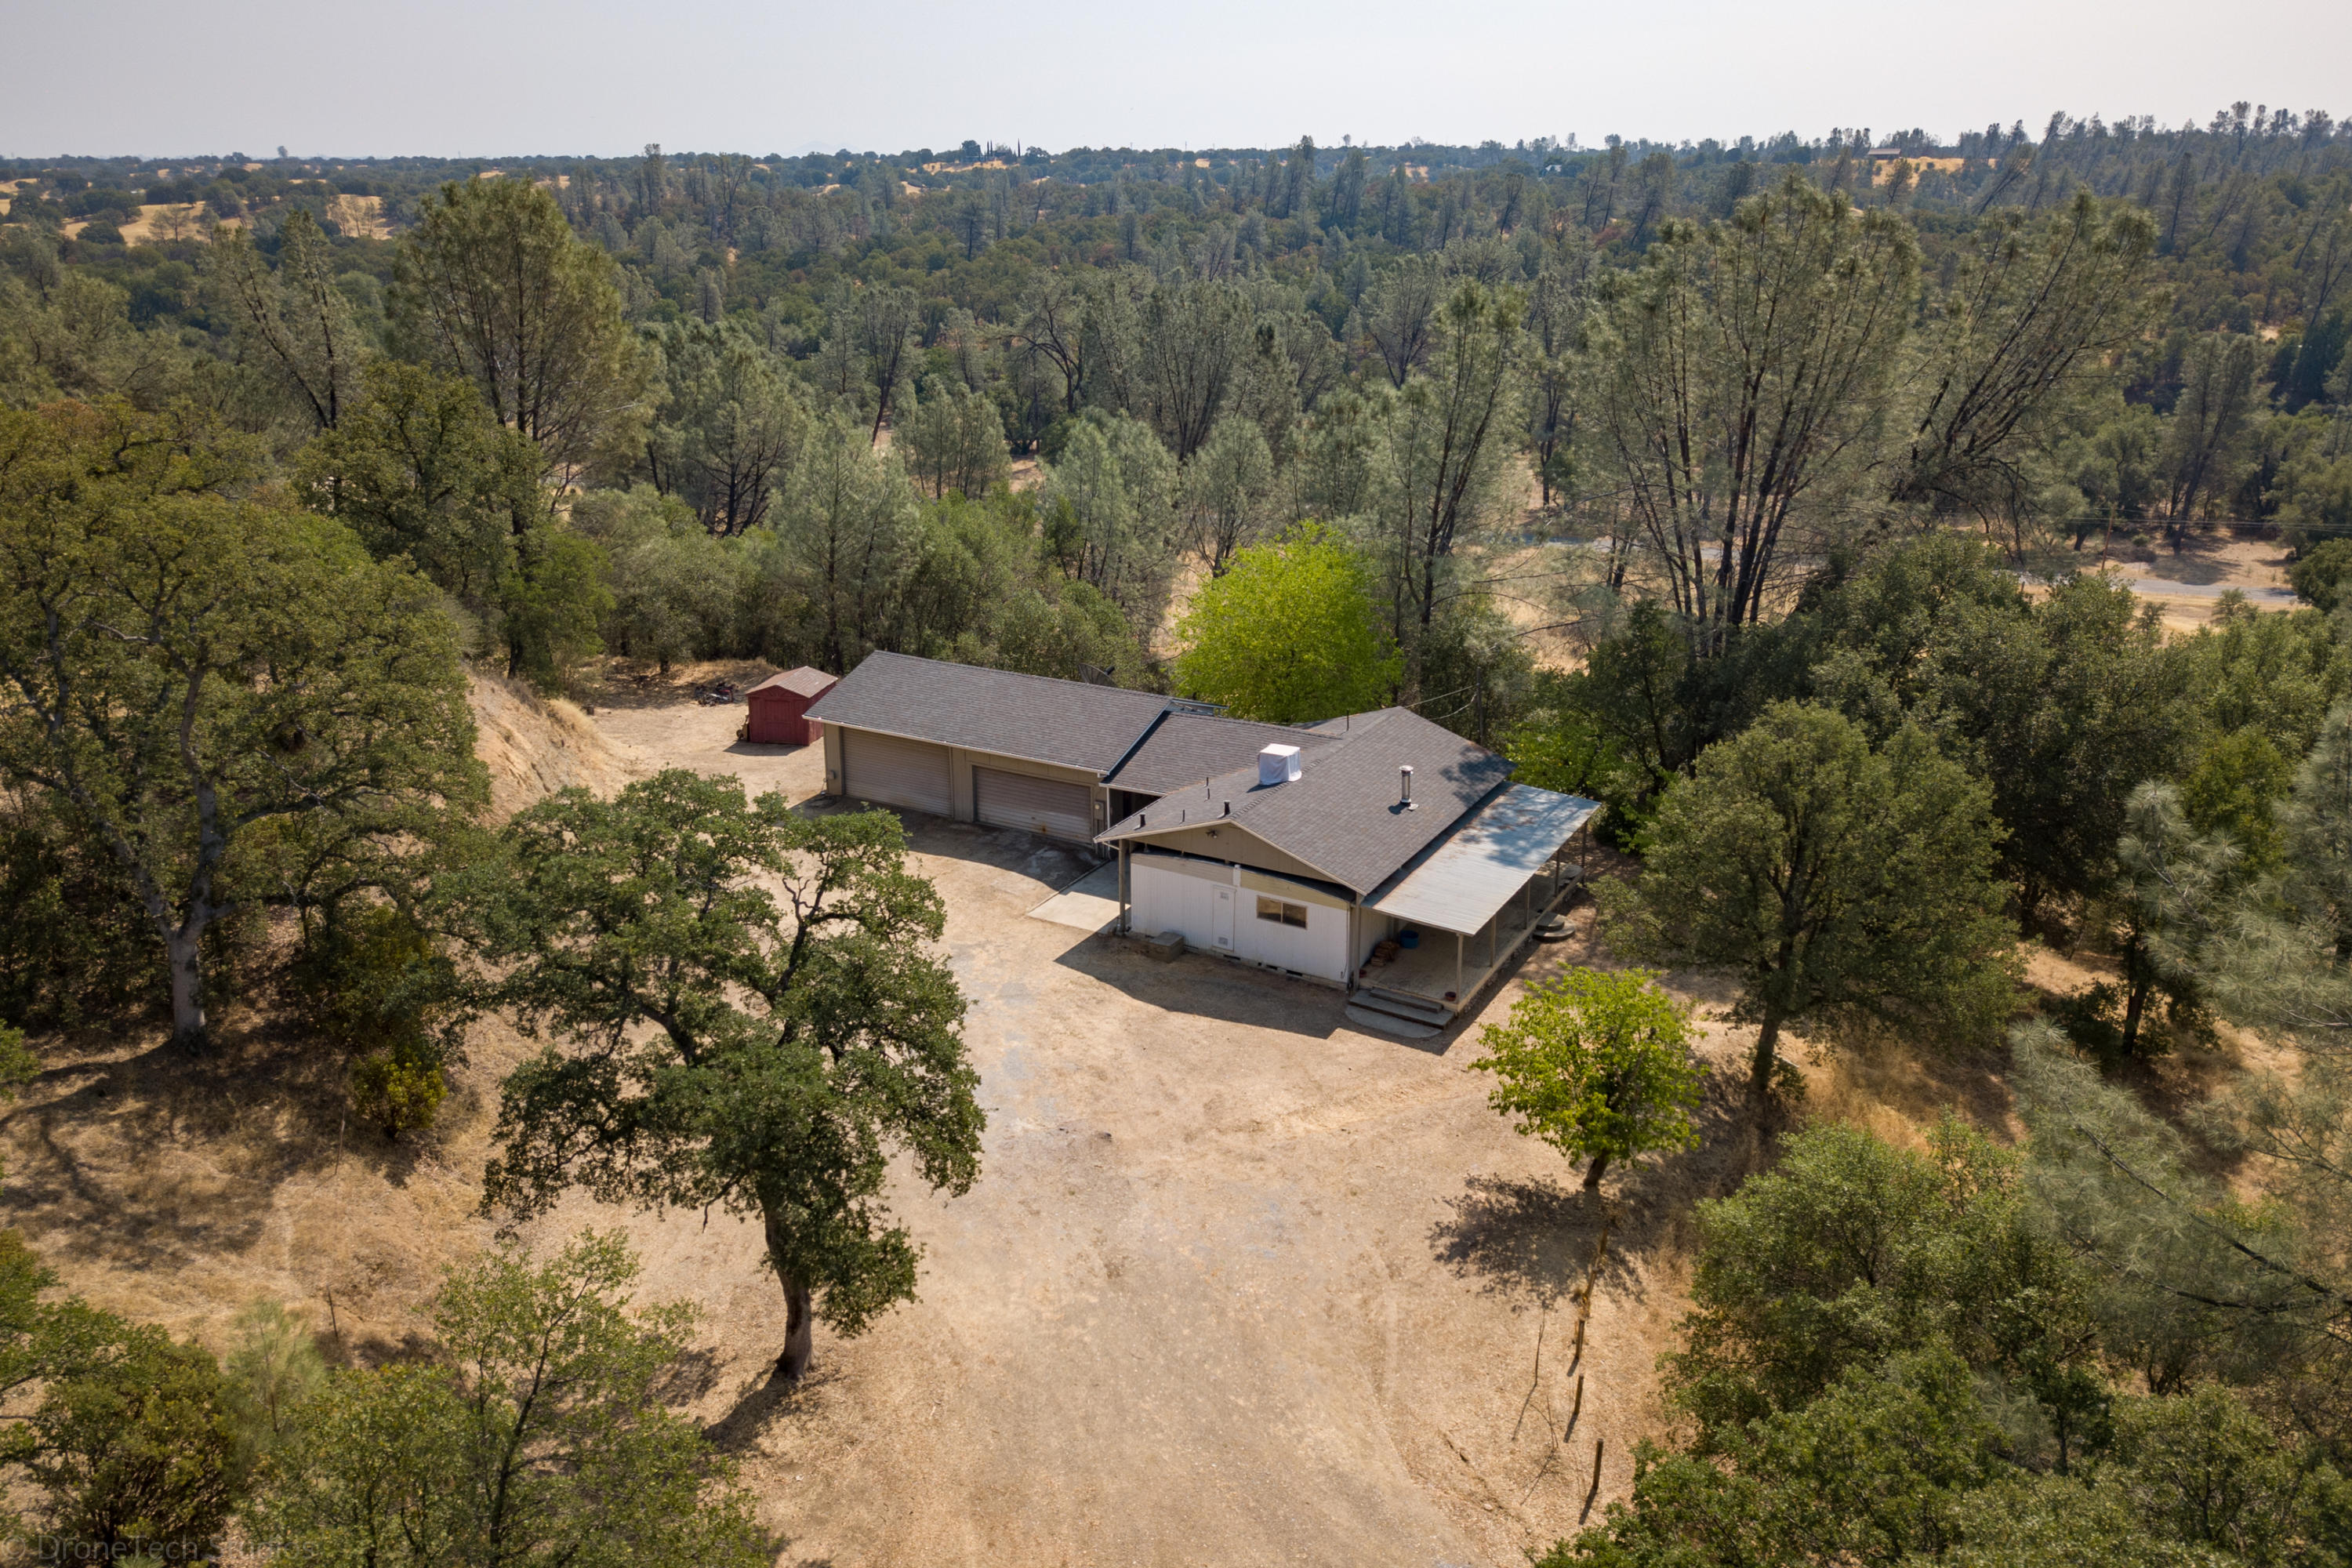 17425 Benson Rd, Cottonwood, CA 96022